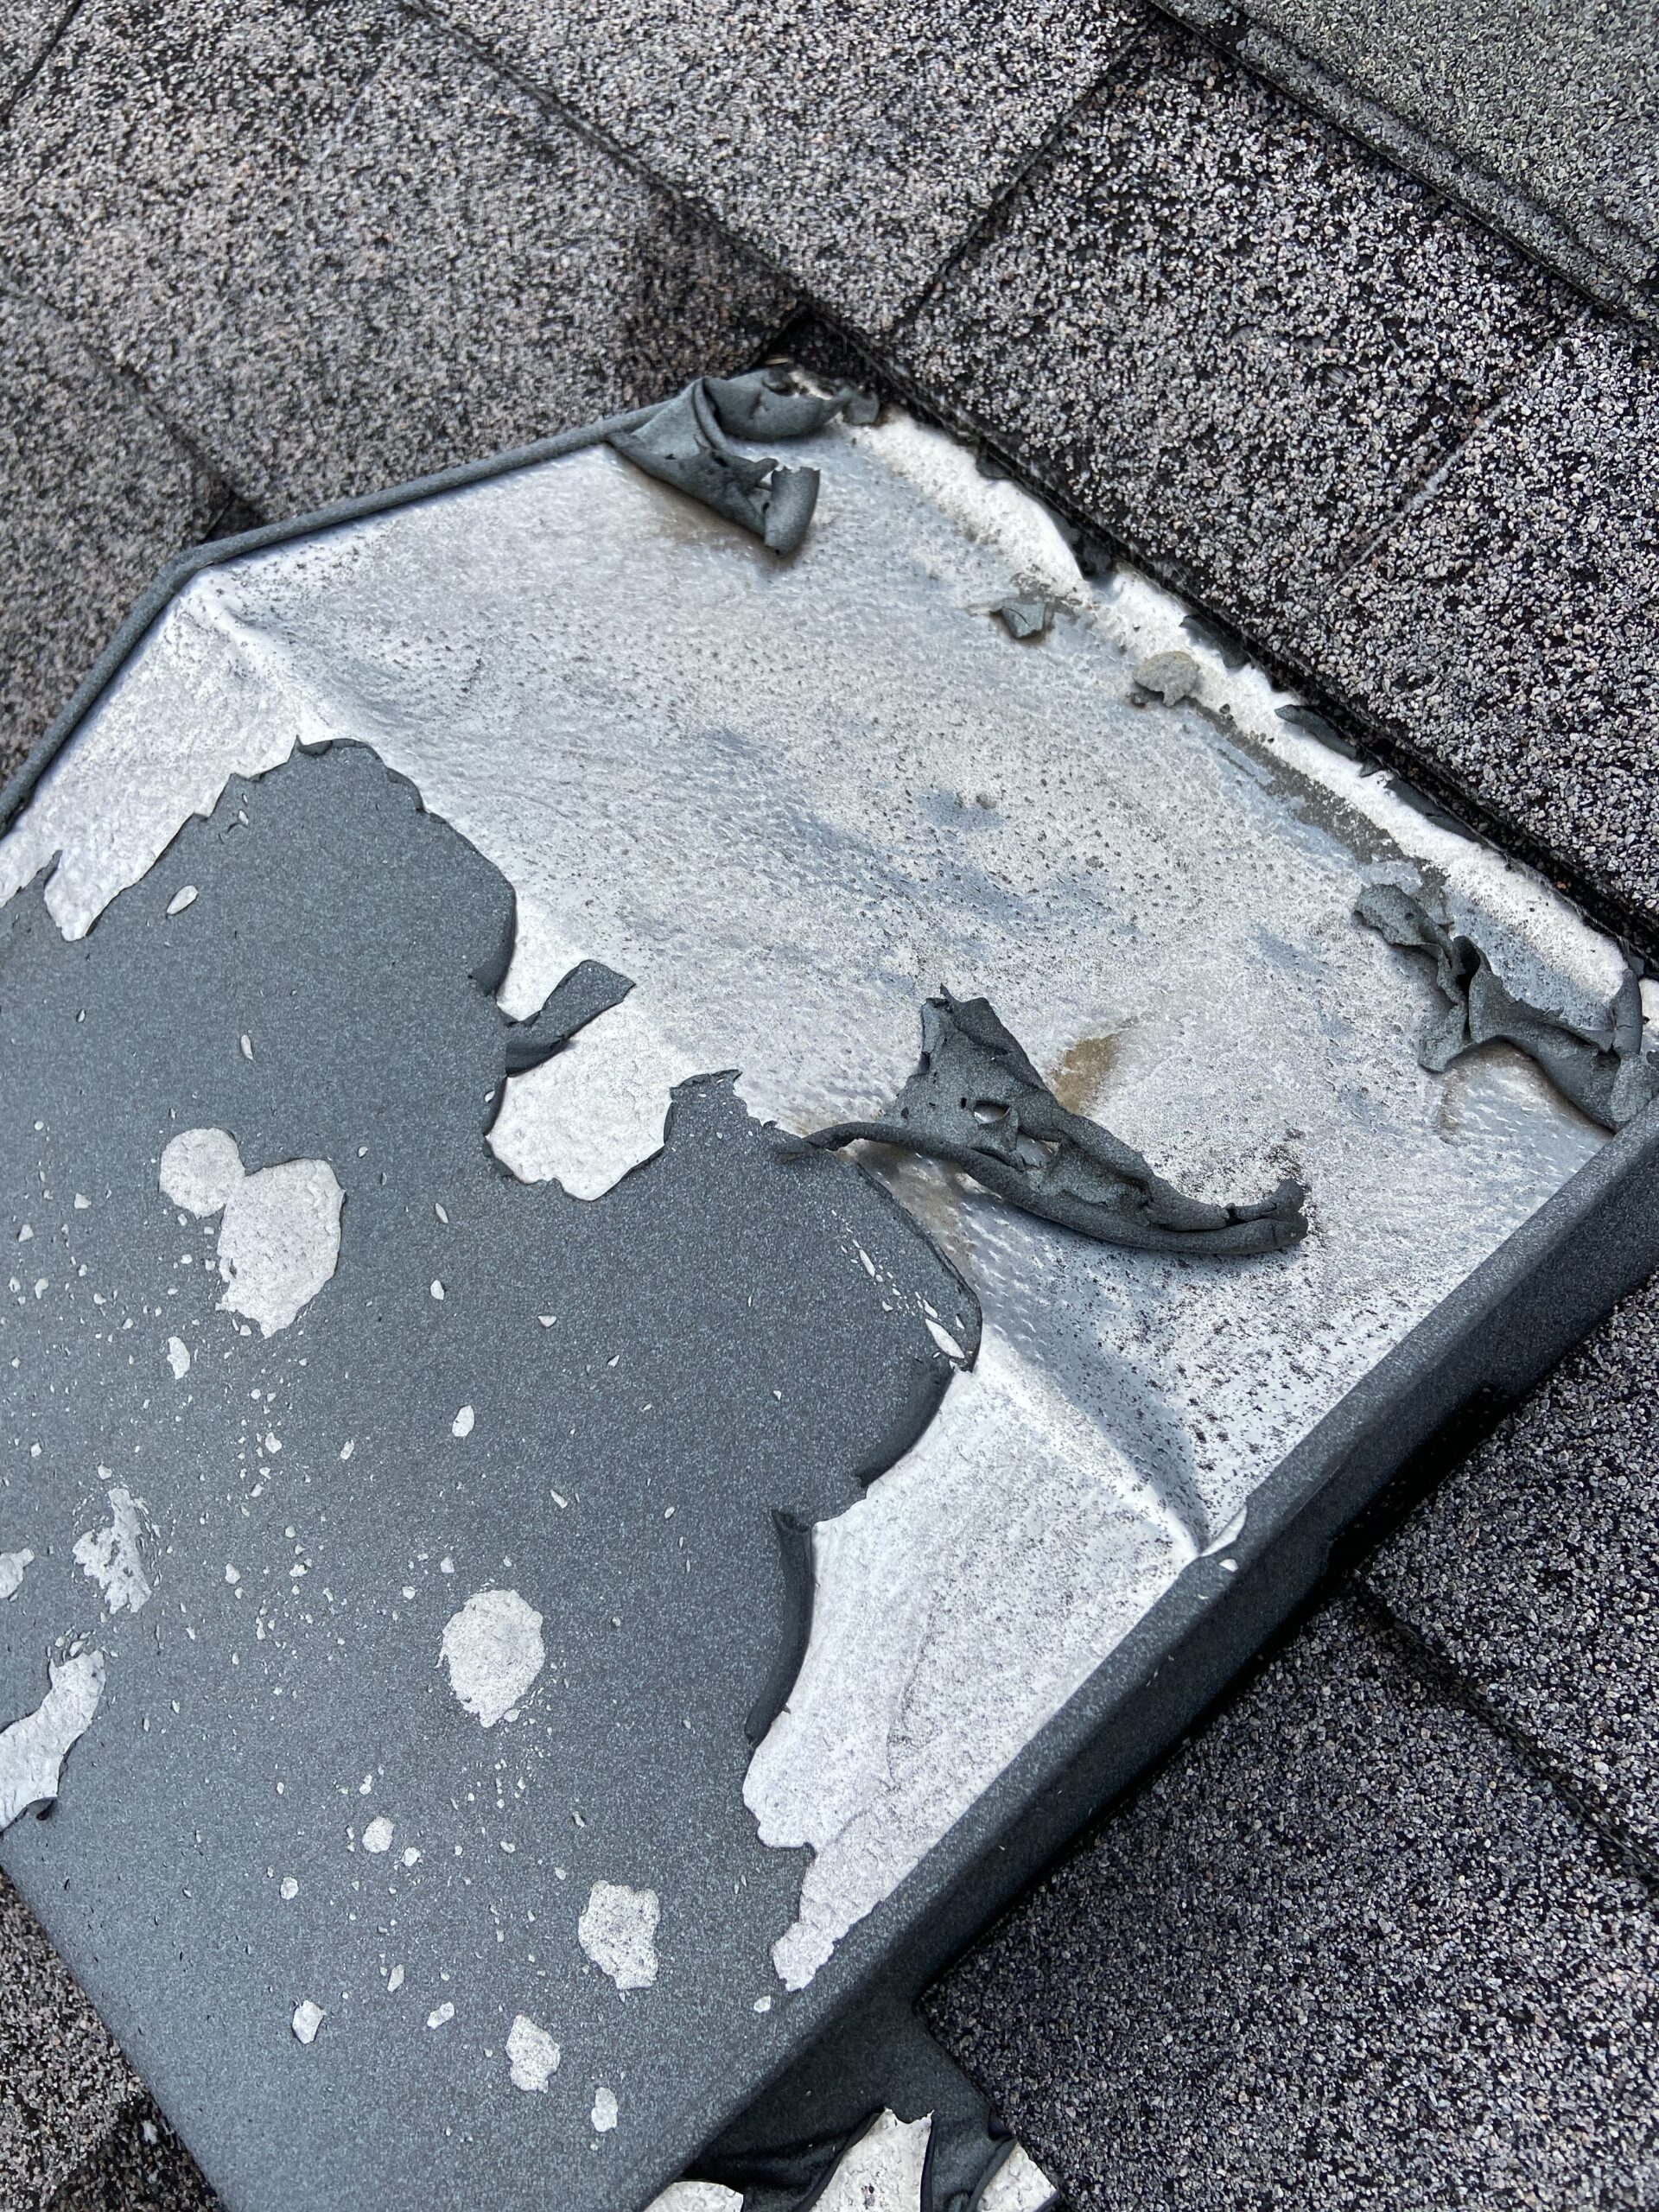 Hail damage roof vent in Dandridge Tennessee